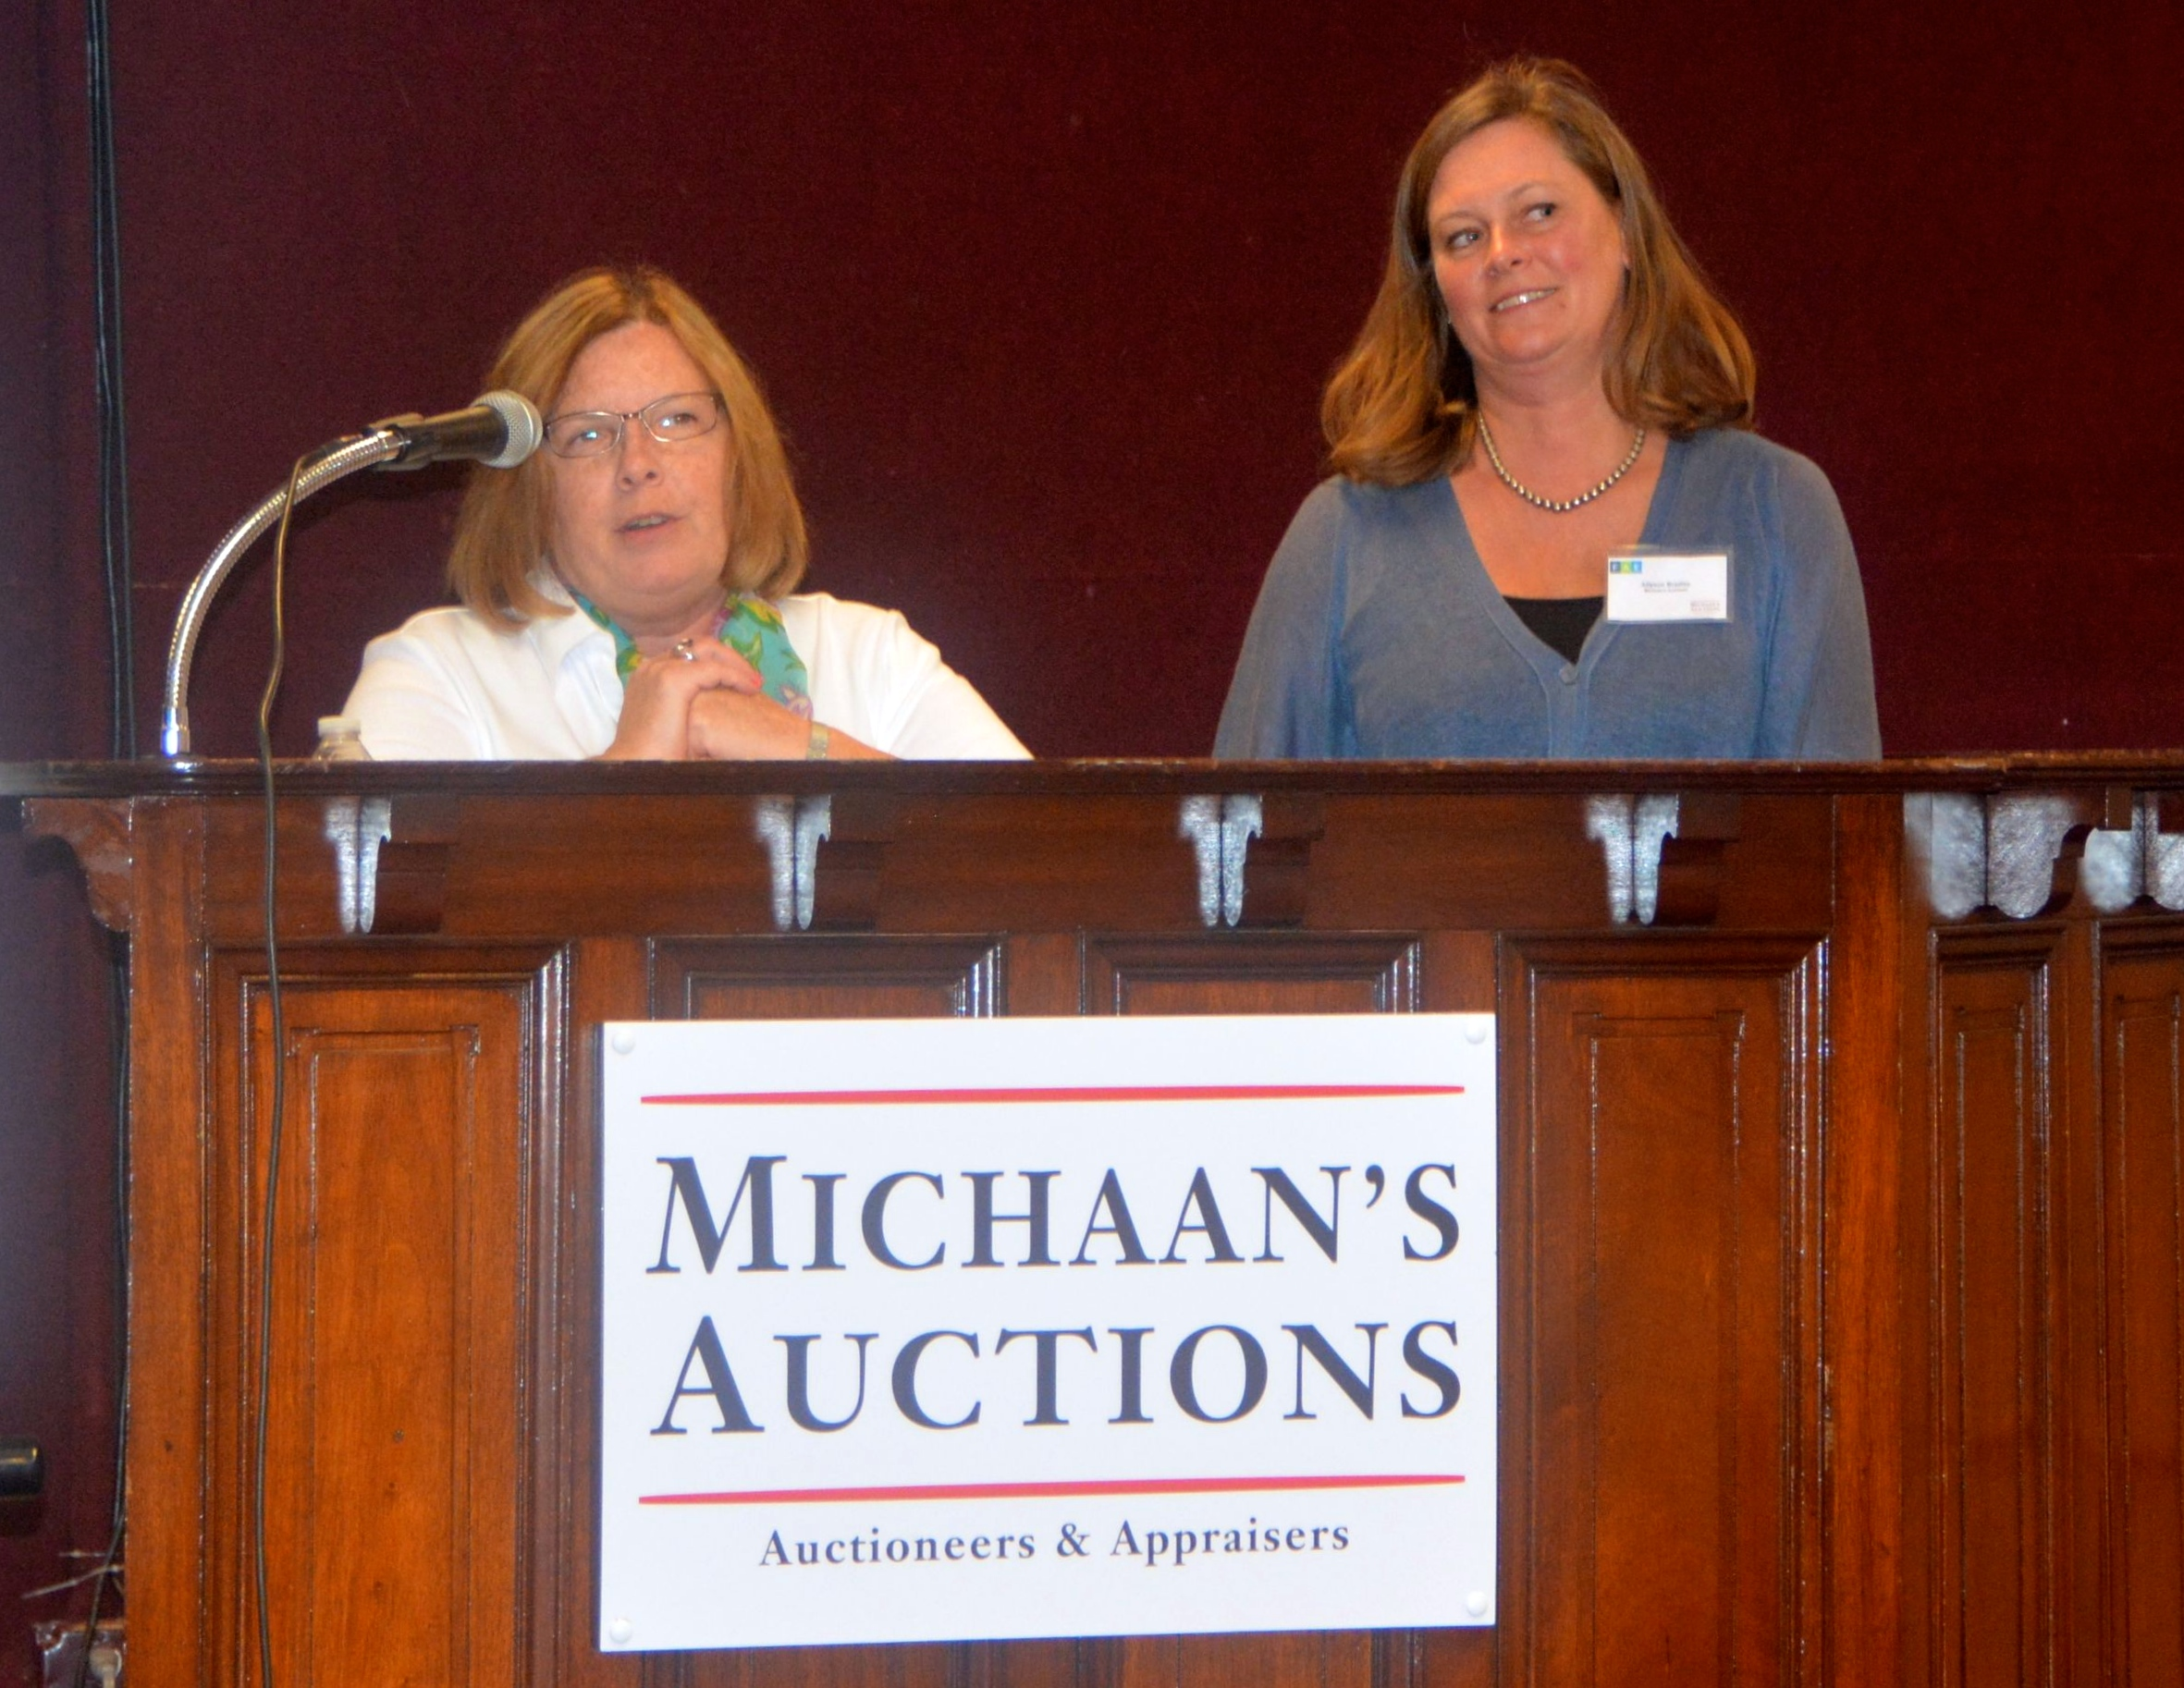 Maureen Winer, President of FAE. with Allyson Bradley of Michaan's Auctions